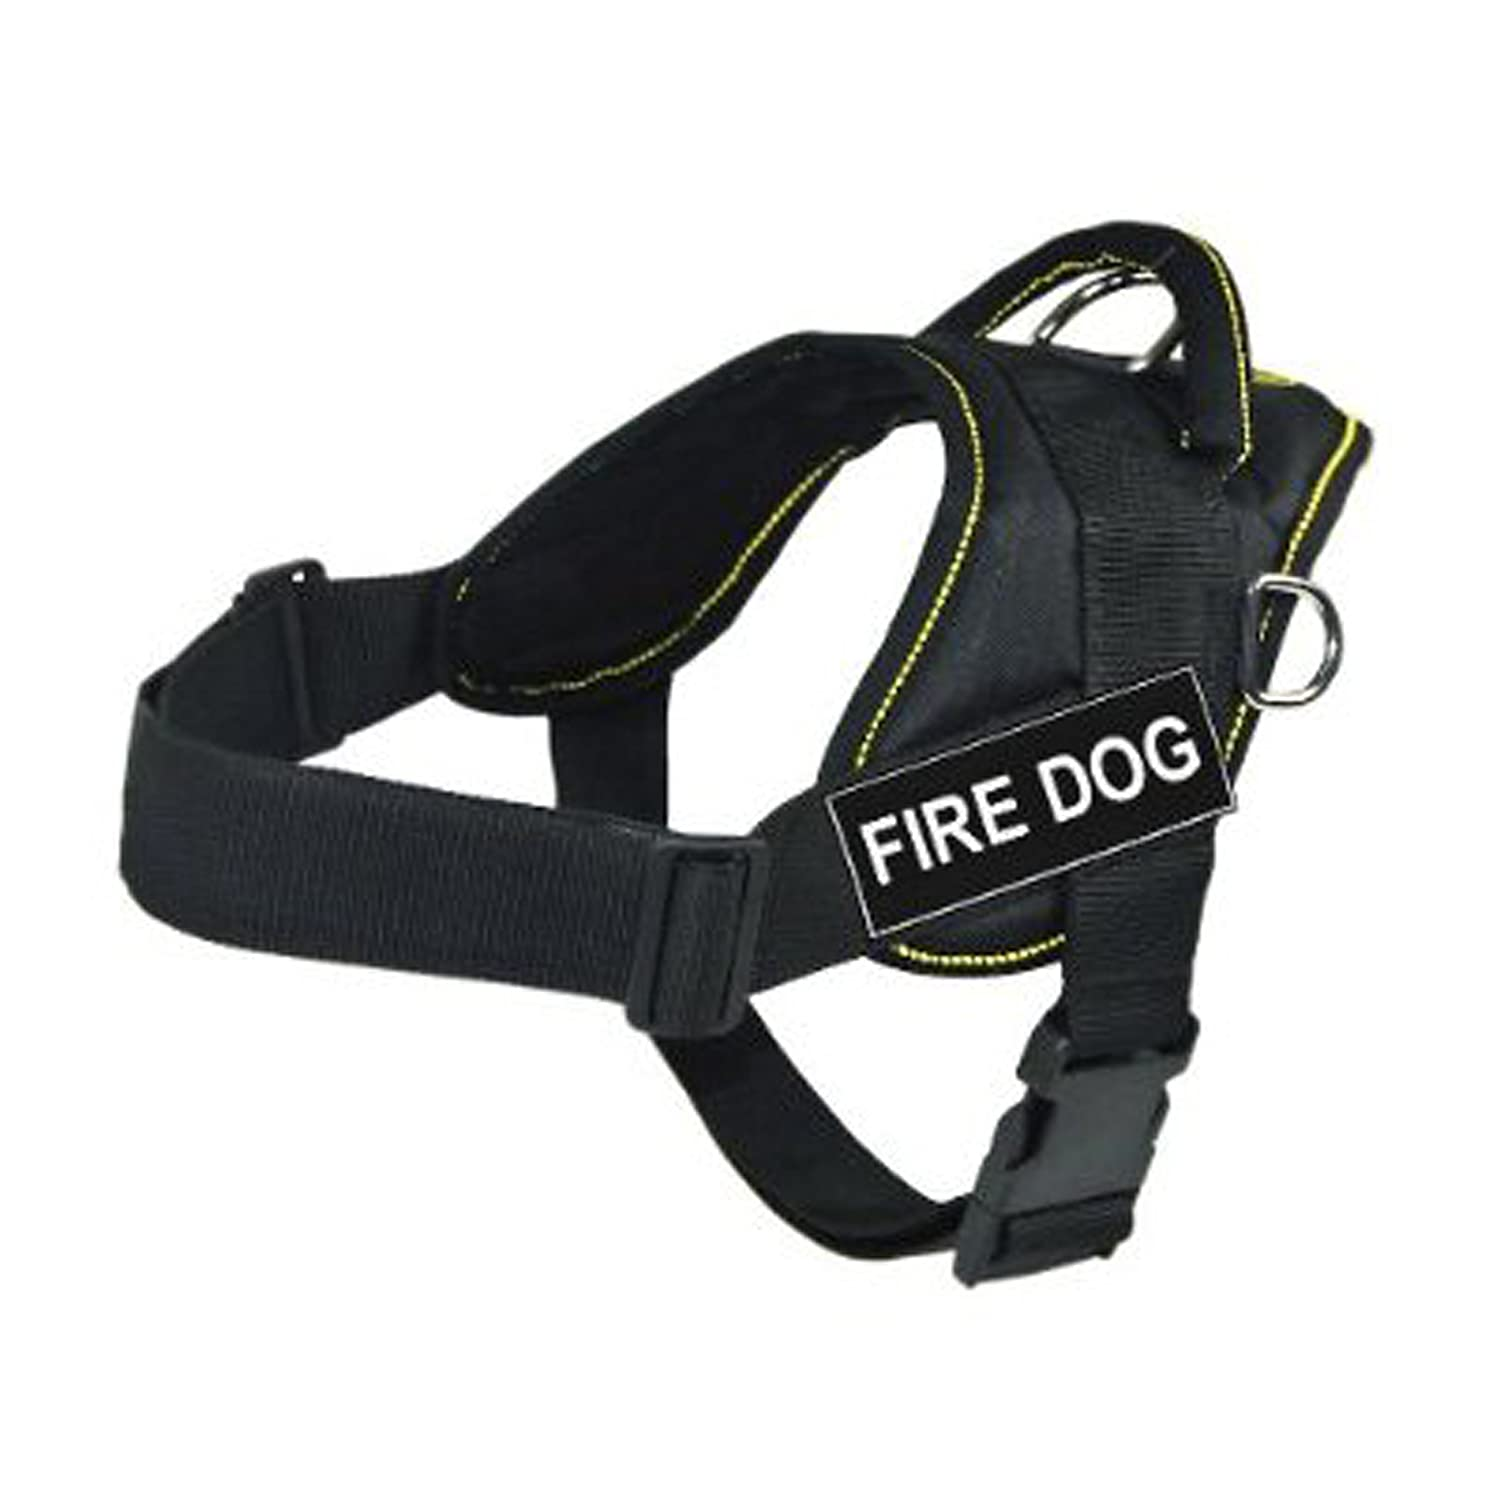 Dean & Tyler Fun Works Harness, Fire Dog, Black with Yellow Trim, Medium, Fits Girth Size  28-Inch to 34-Inch